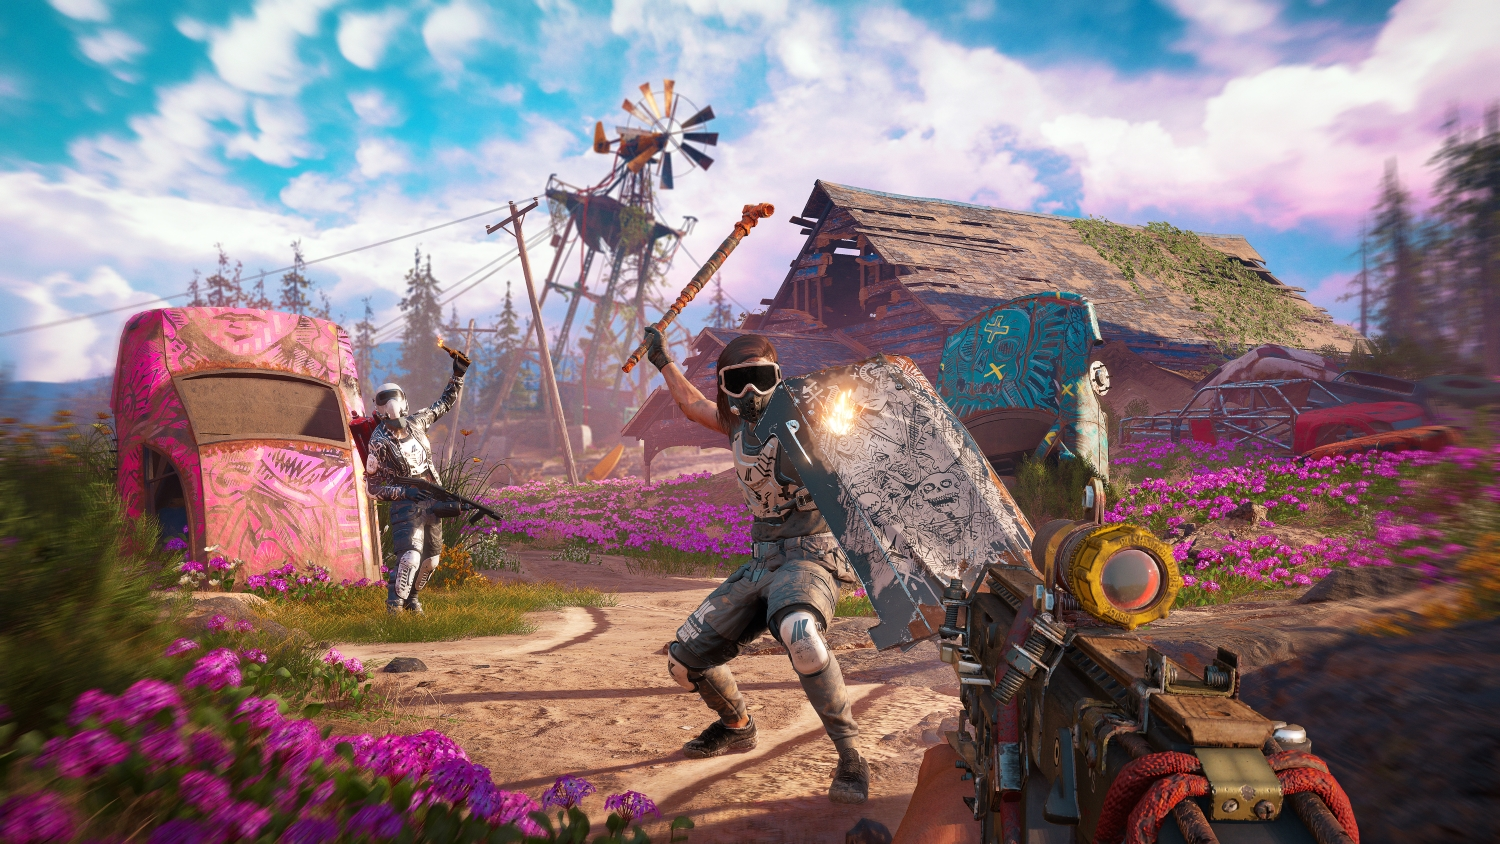 Games Inbox: Far Cry 6 ideas, Scalebound on Switch, and Resident Evil 2 The Ghost Survivors